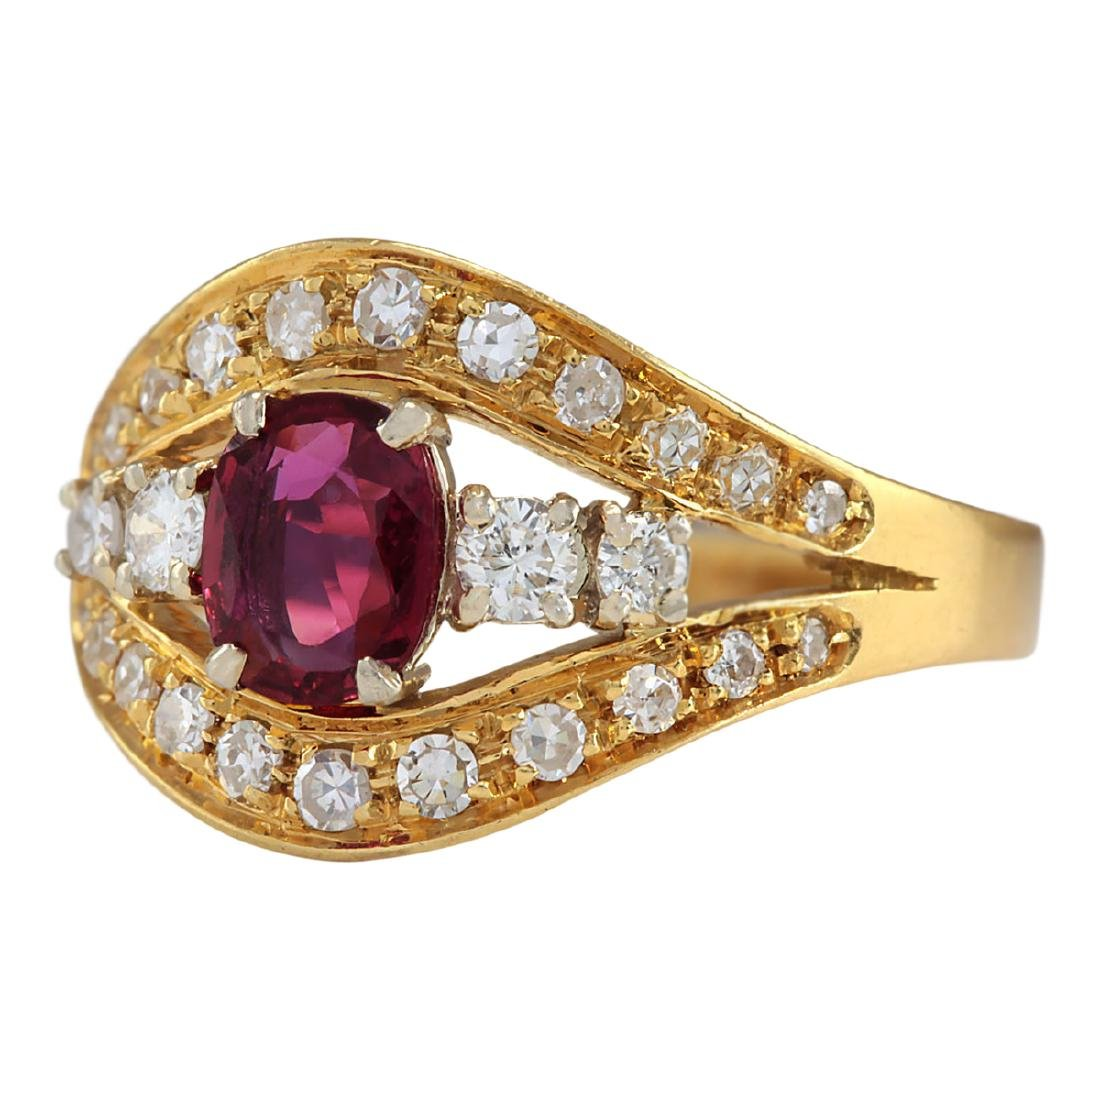 1.15 CTW Natural Ruby And Diamond Ring 18K Solid Yellow - 2